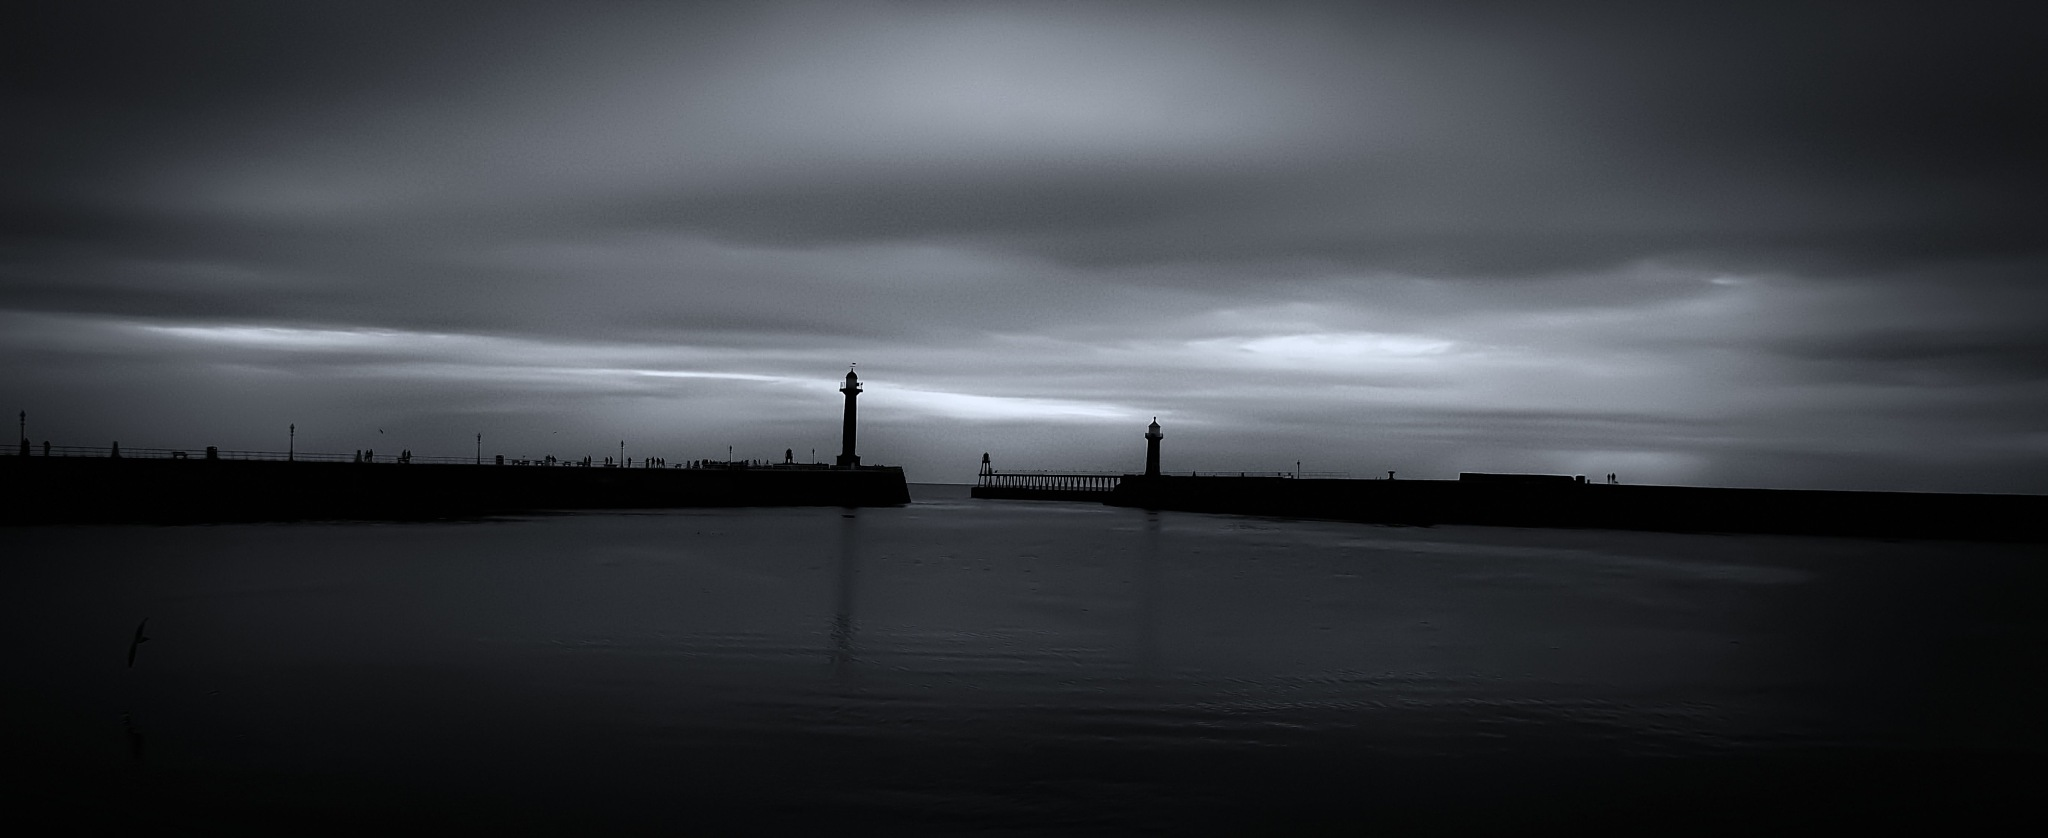 People on the pier by mark fisher